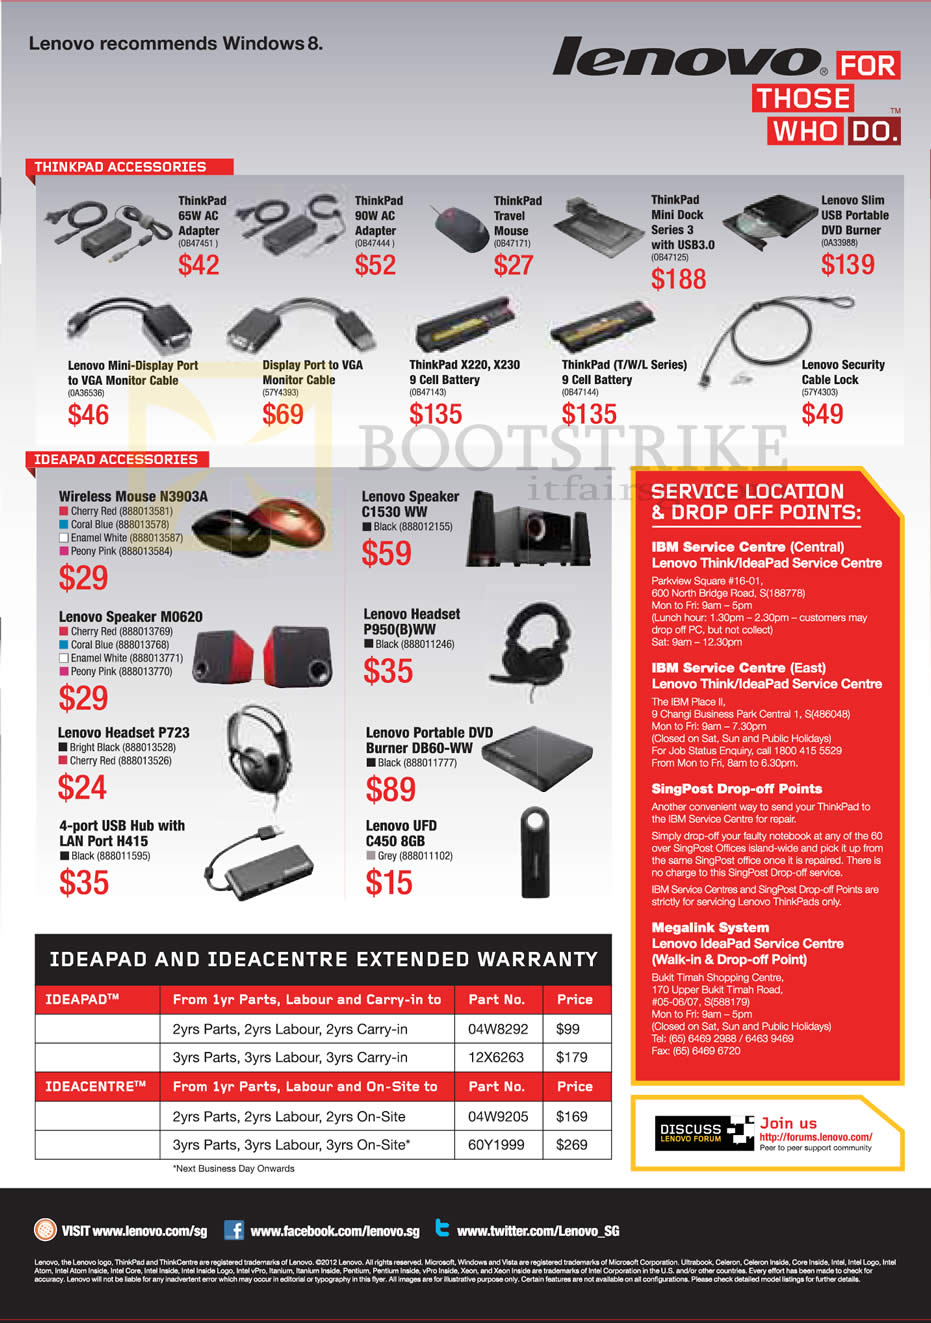 SITEX 2012 price list image brochure of Lenovo Extended Warranty, Accessories Thinkpad Adapter, Mouse, Keyboard, Cable, Mouse, Speaker, Headset